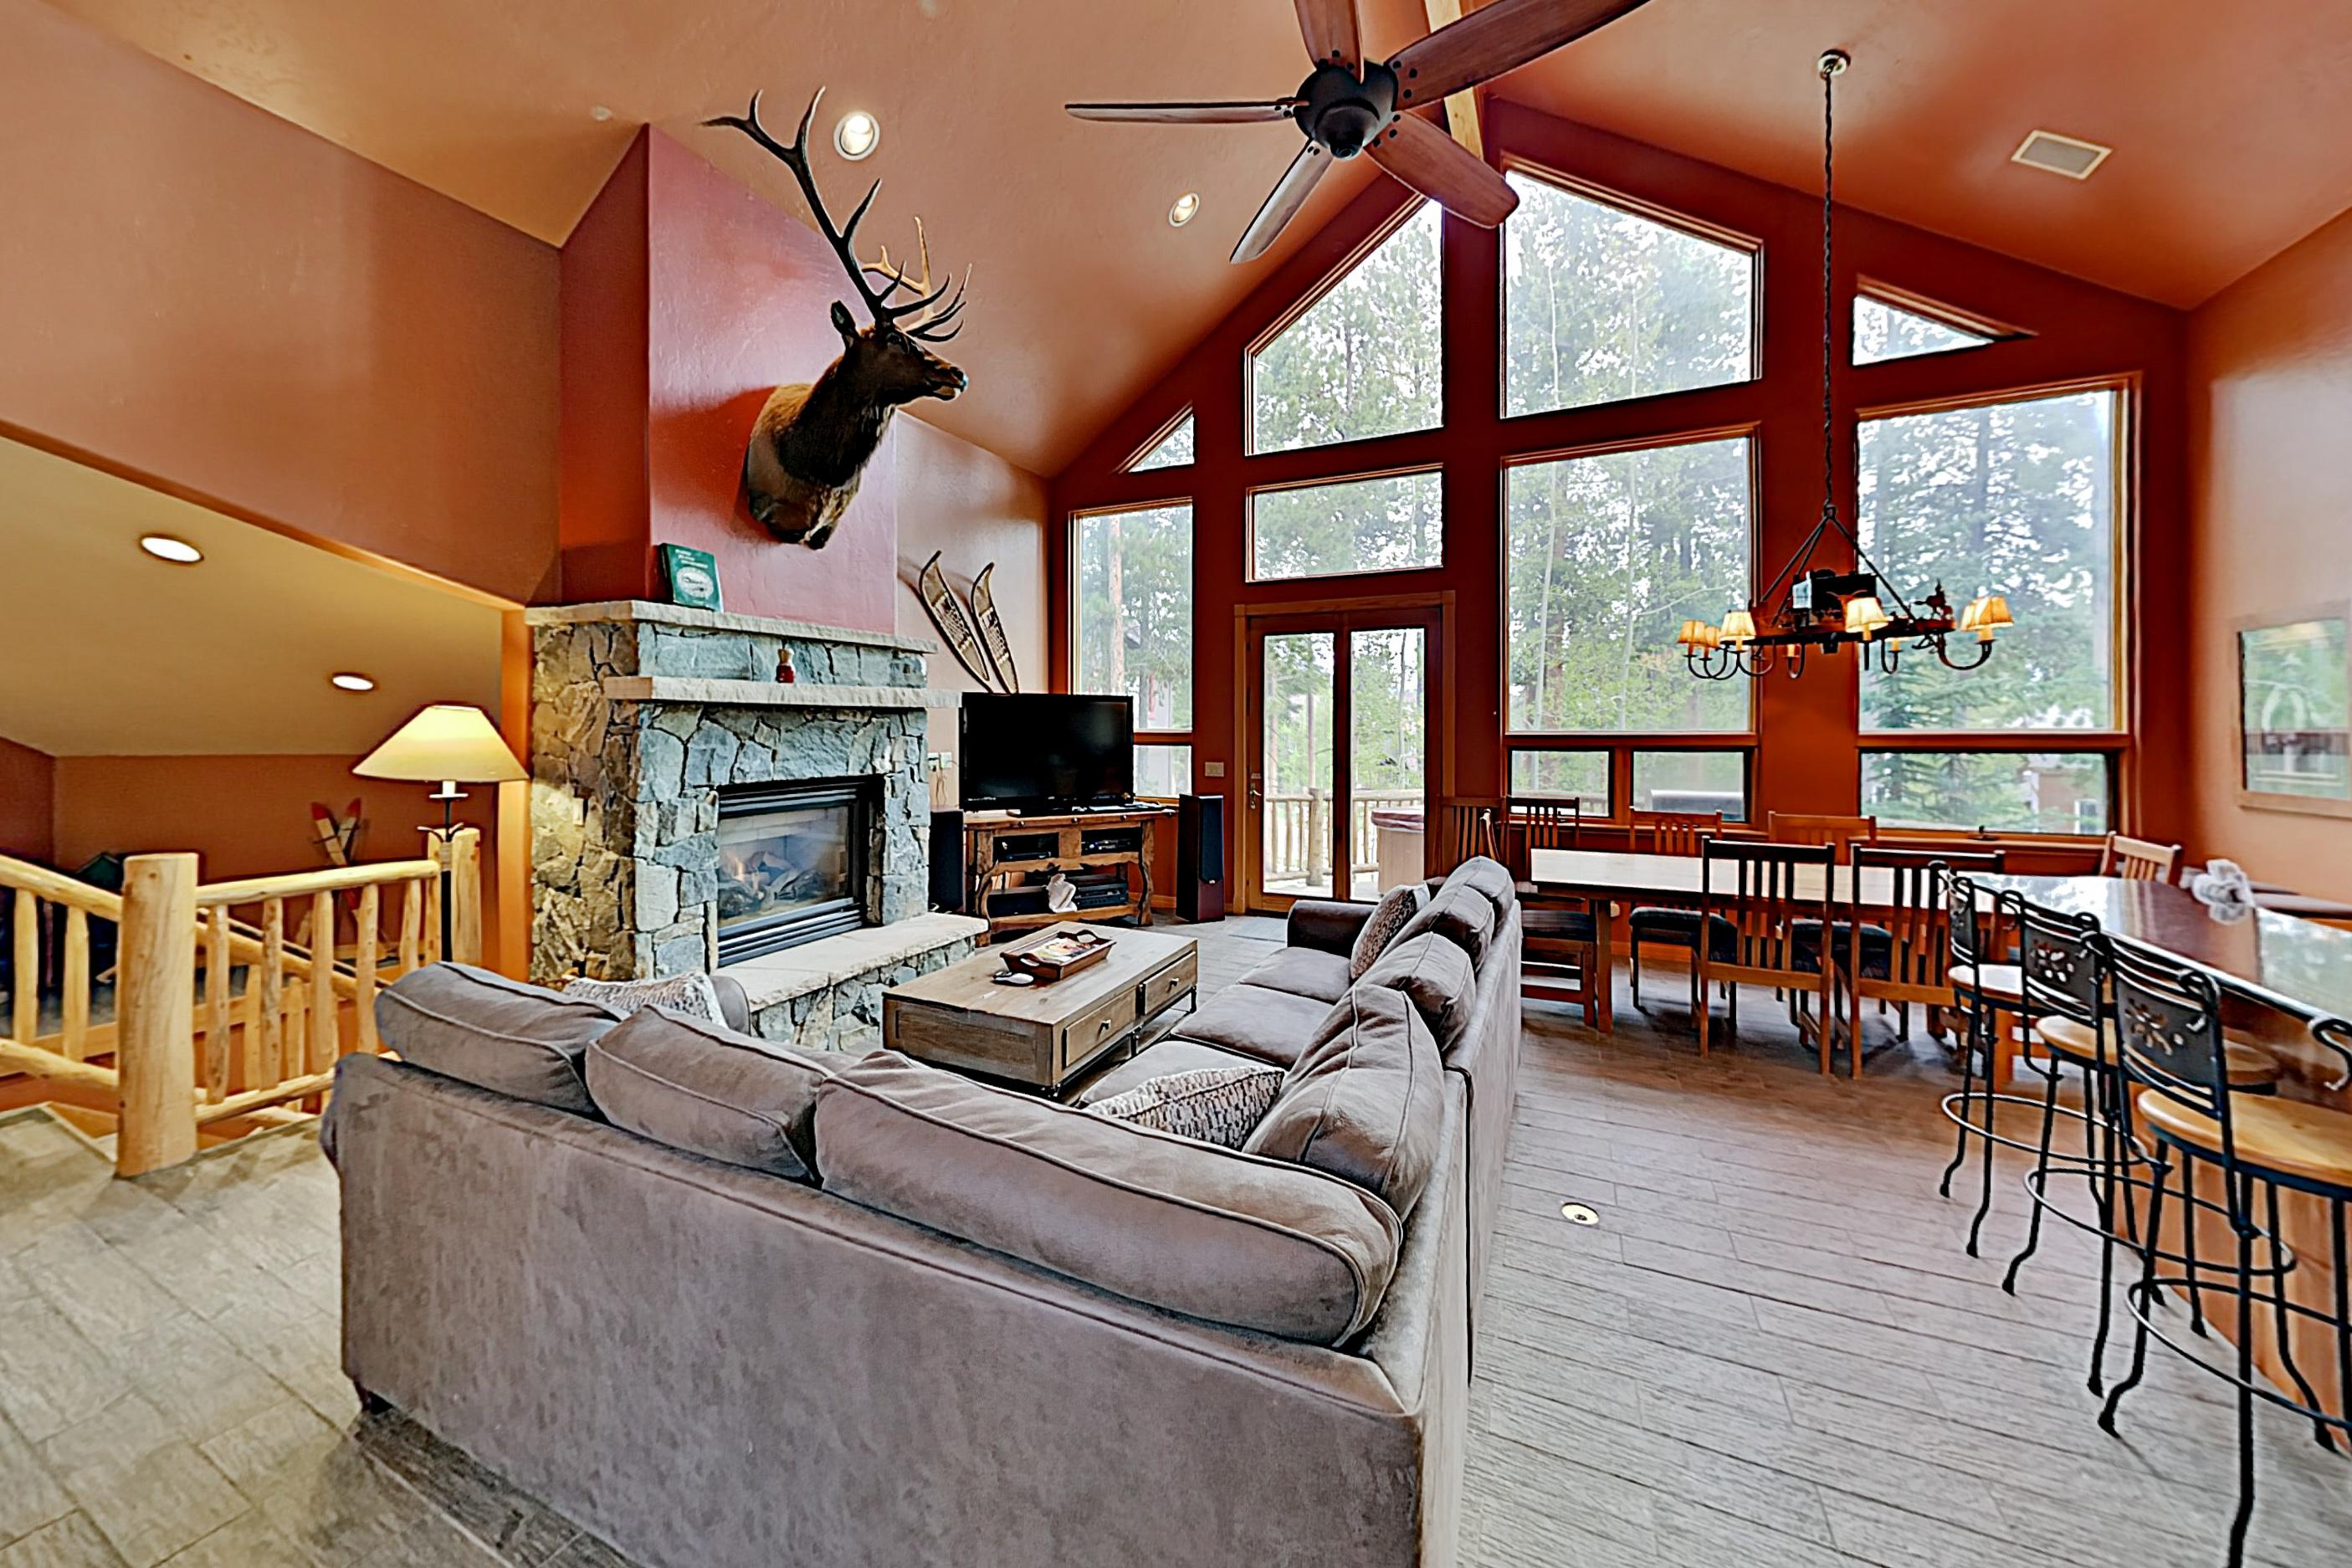 Welcome to Breckenridge! This rental is professionally managed by TurnKey Vacation Rentals.